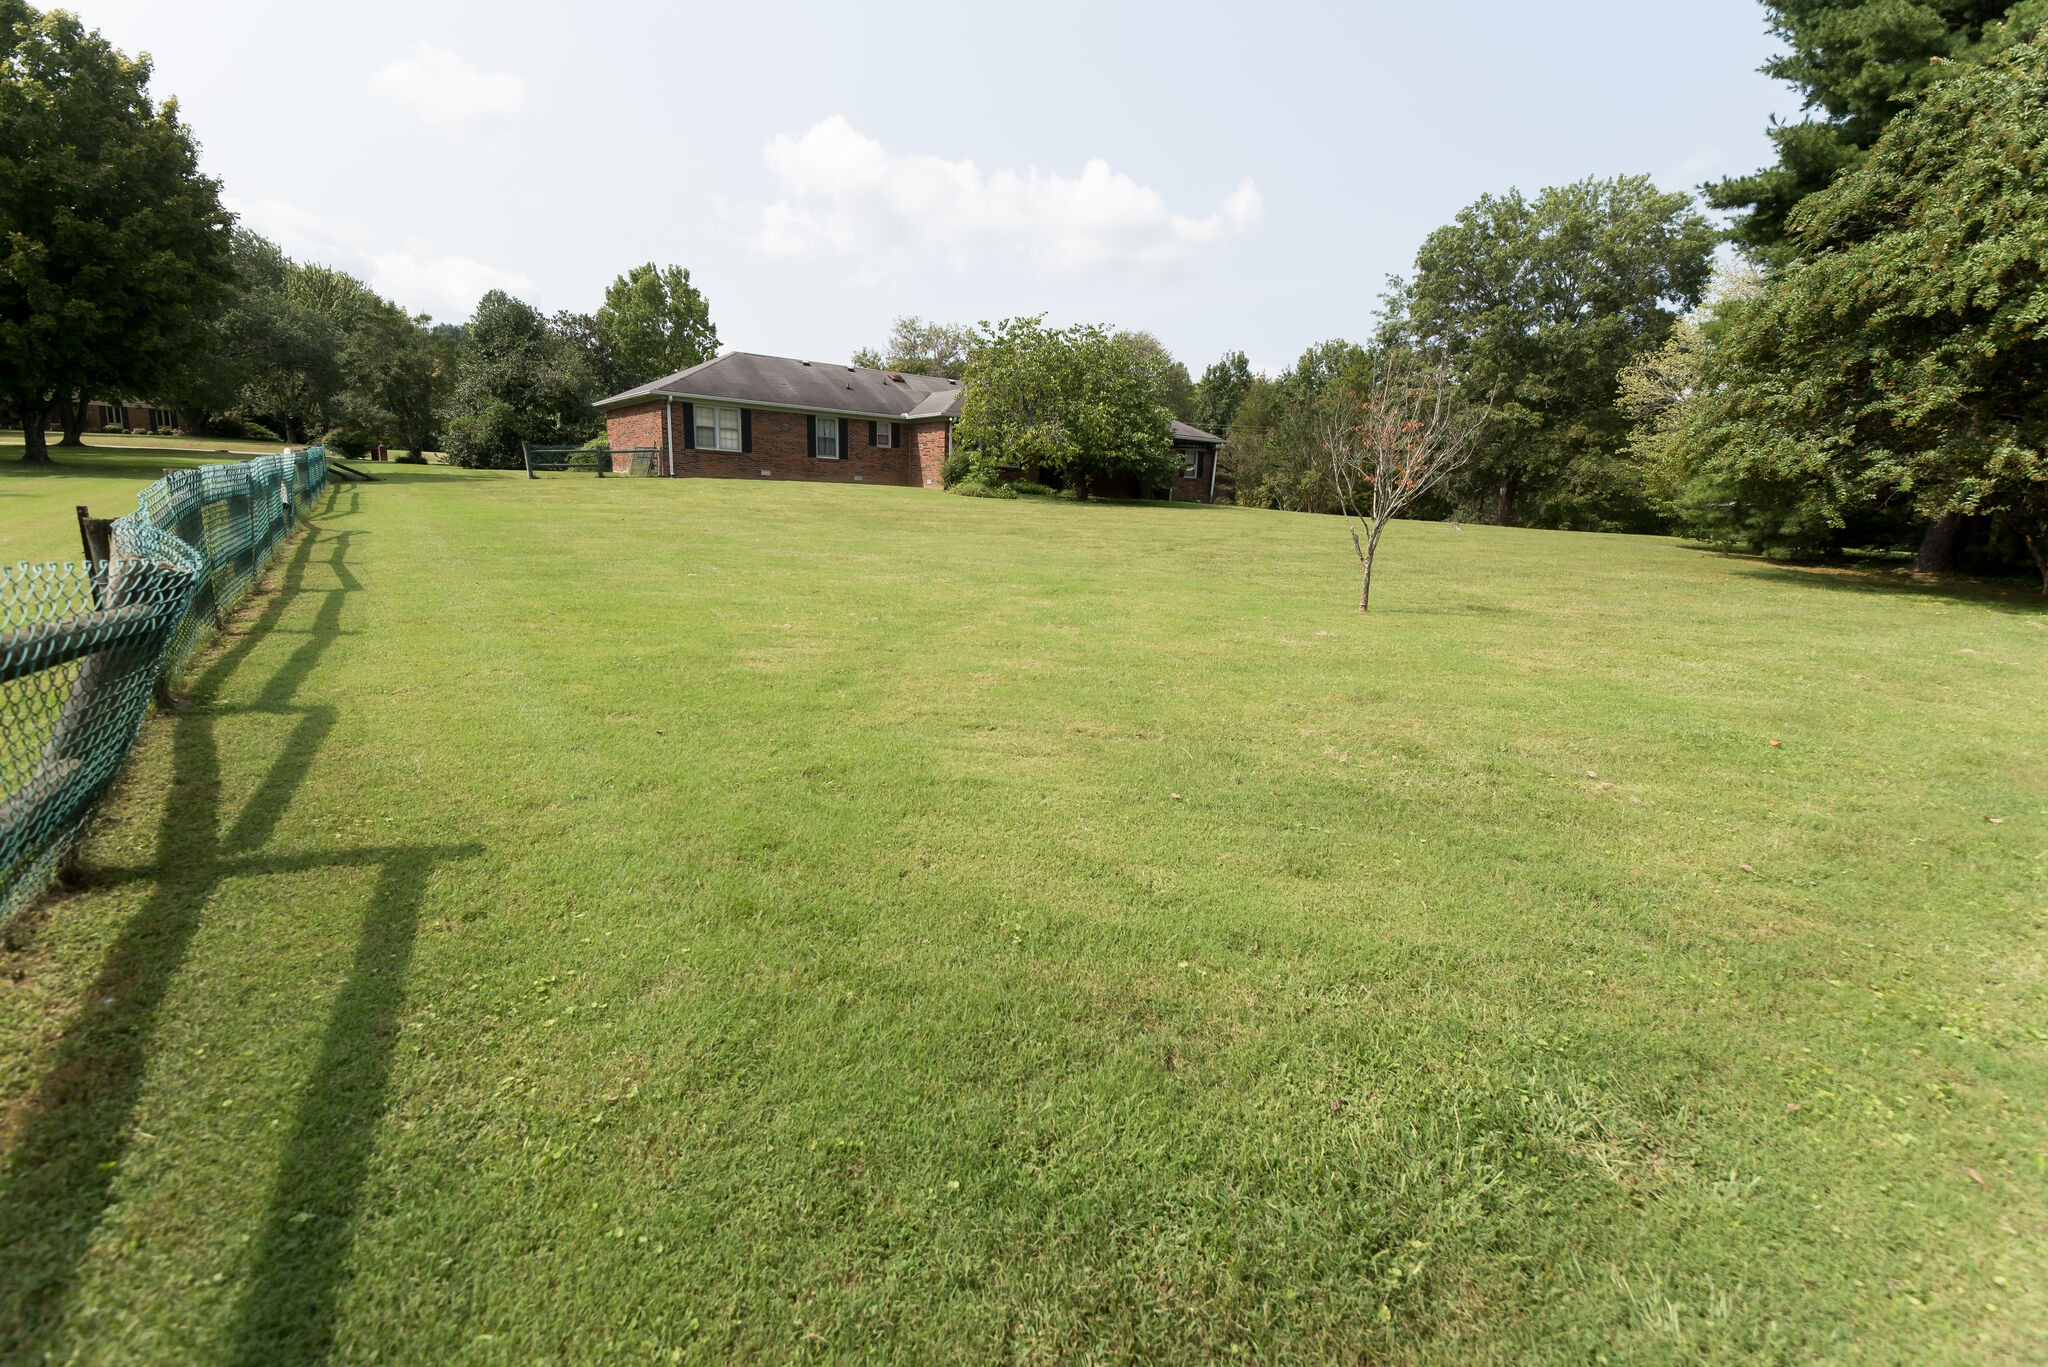 This property is in multiple offers.  All offers need to be received by 10:00am Monday, Sept 21.  The Trustees shall respond to offers by end of day 9/21/20.  Grassland schools, easy Nashville access, 1.2ac. NO HOA! Home has never been listed! Sold AS IS.  Great one level living.  Beautiful lot...home has great spaces.  Needs updating.  Someone could go all Joanna Gaines on this one!!  Lg bonus room just off kitchen, cozy den with stone fireplace.  A must see.  Easy to show.